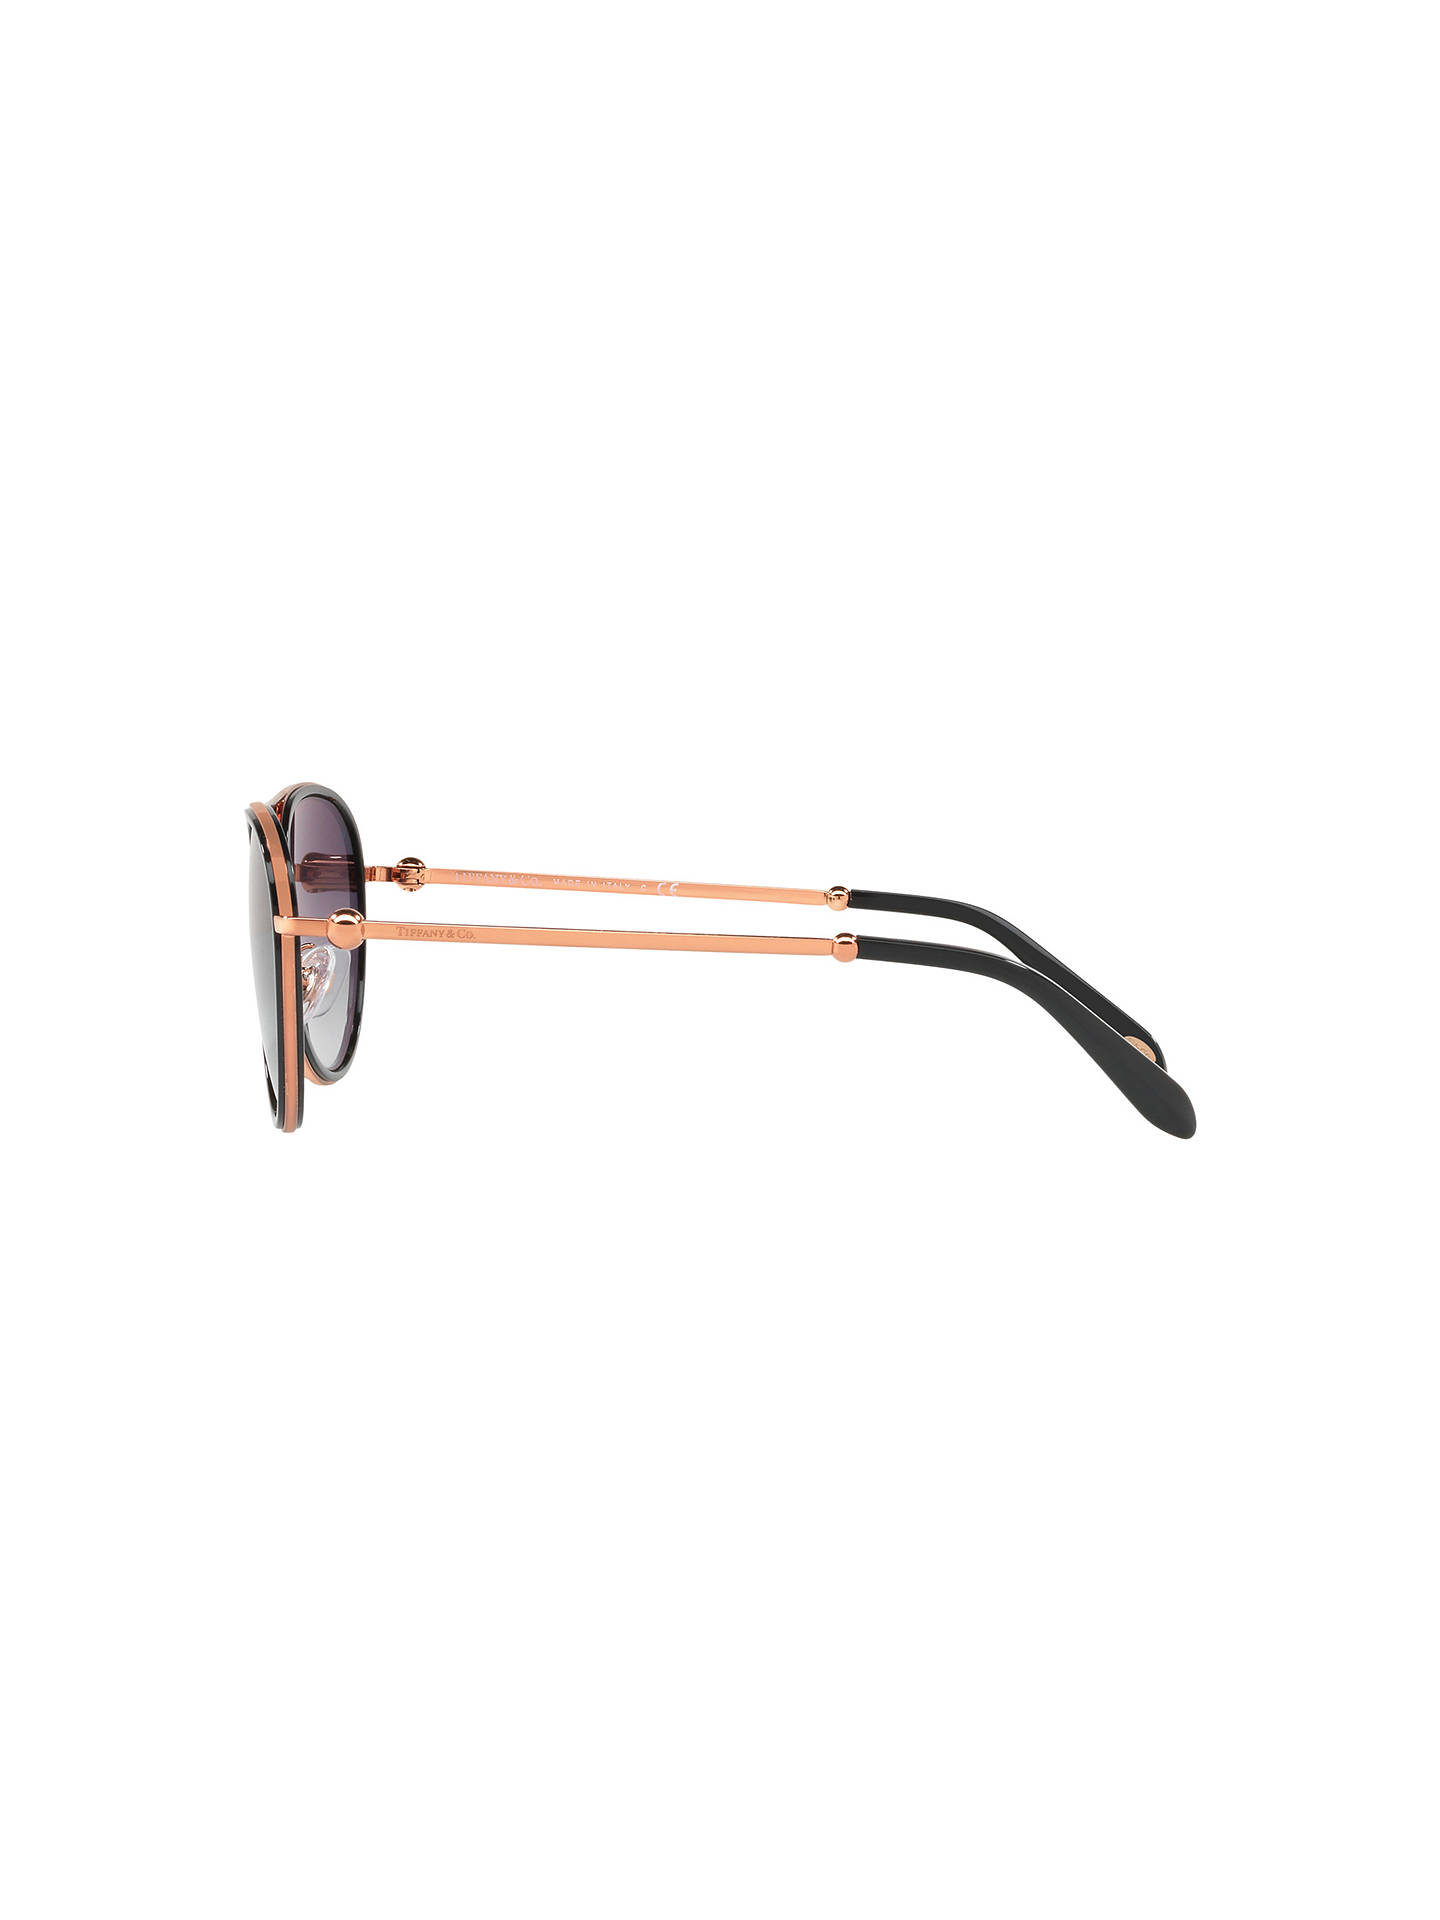 7a6a4cb7abd7 ... Buy Tiffany & Co TF3059 Women's Aviator Sunglasses, Rose Gold/Grey  Gradient Online at ...